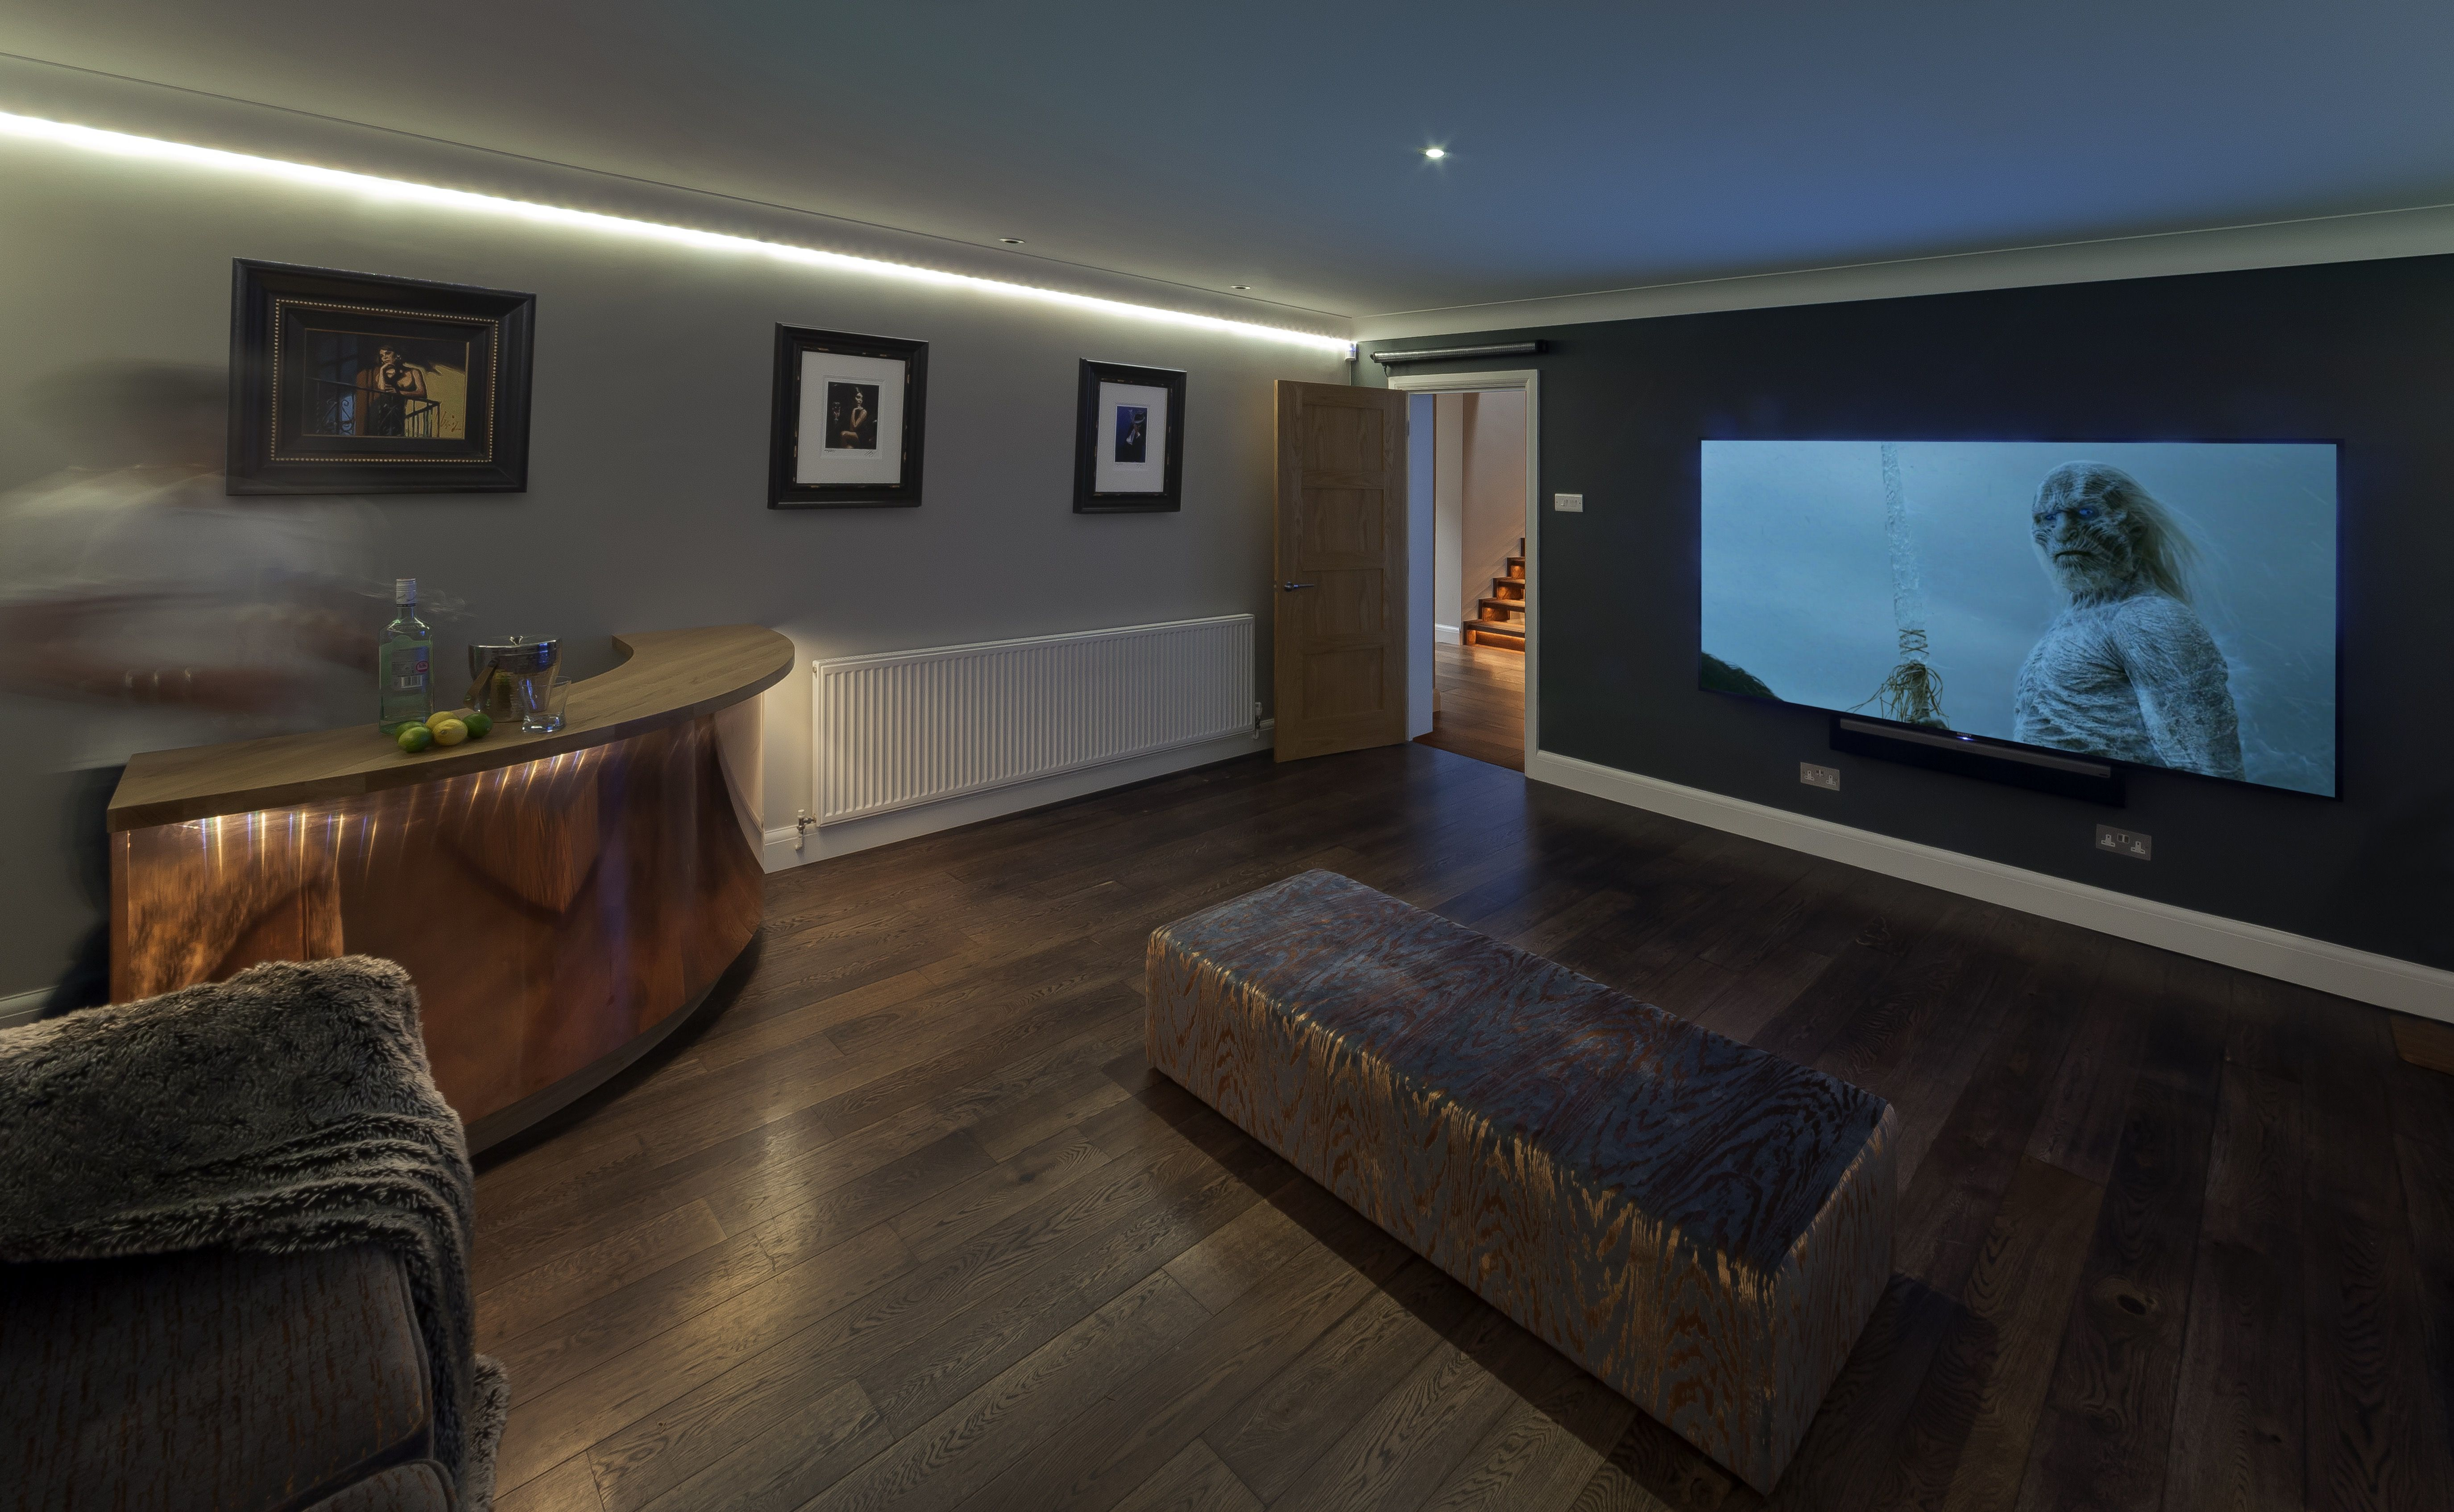 Home cinema room with curved copper fronted bar Caroline